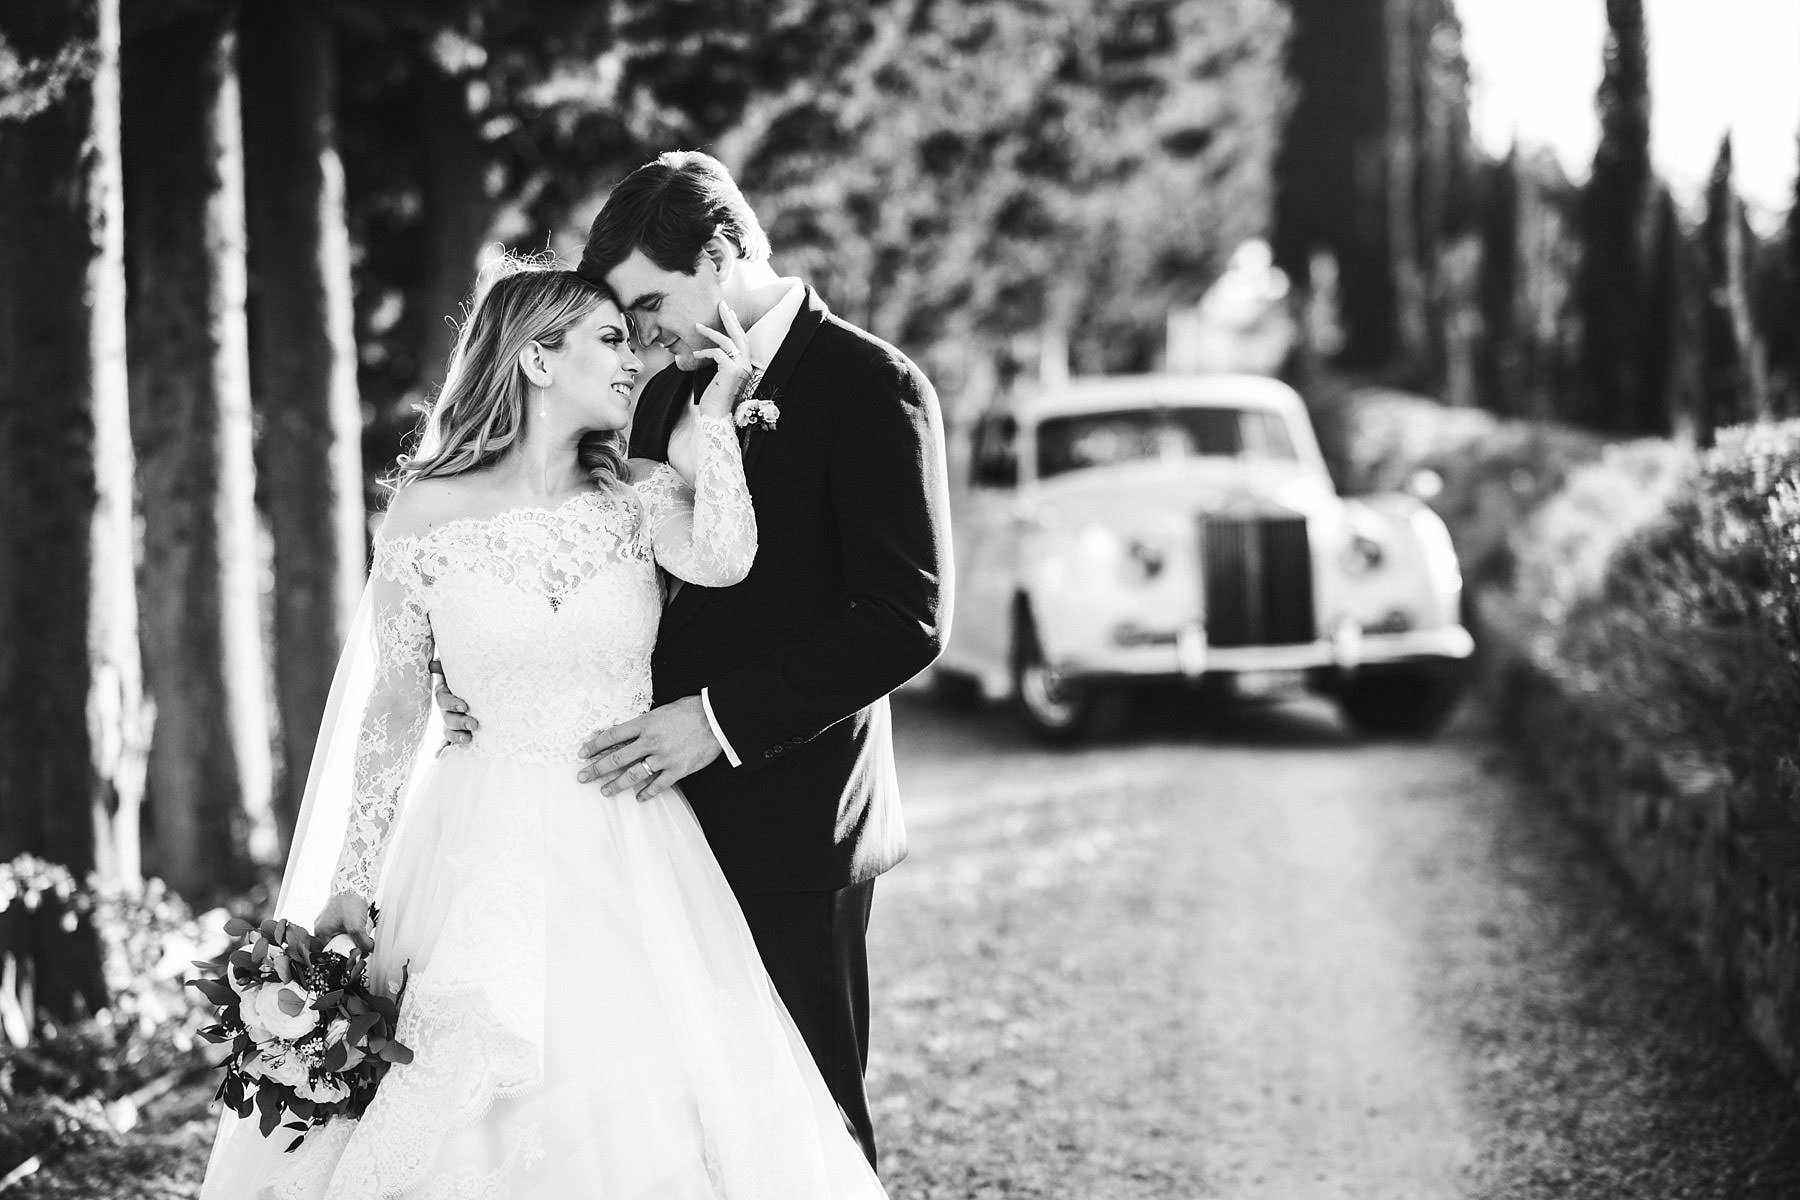 Elegant bride and groom portrait at Villa Mangiacane in Chianti. Intimate destination wedding in Italy